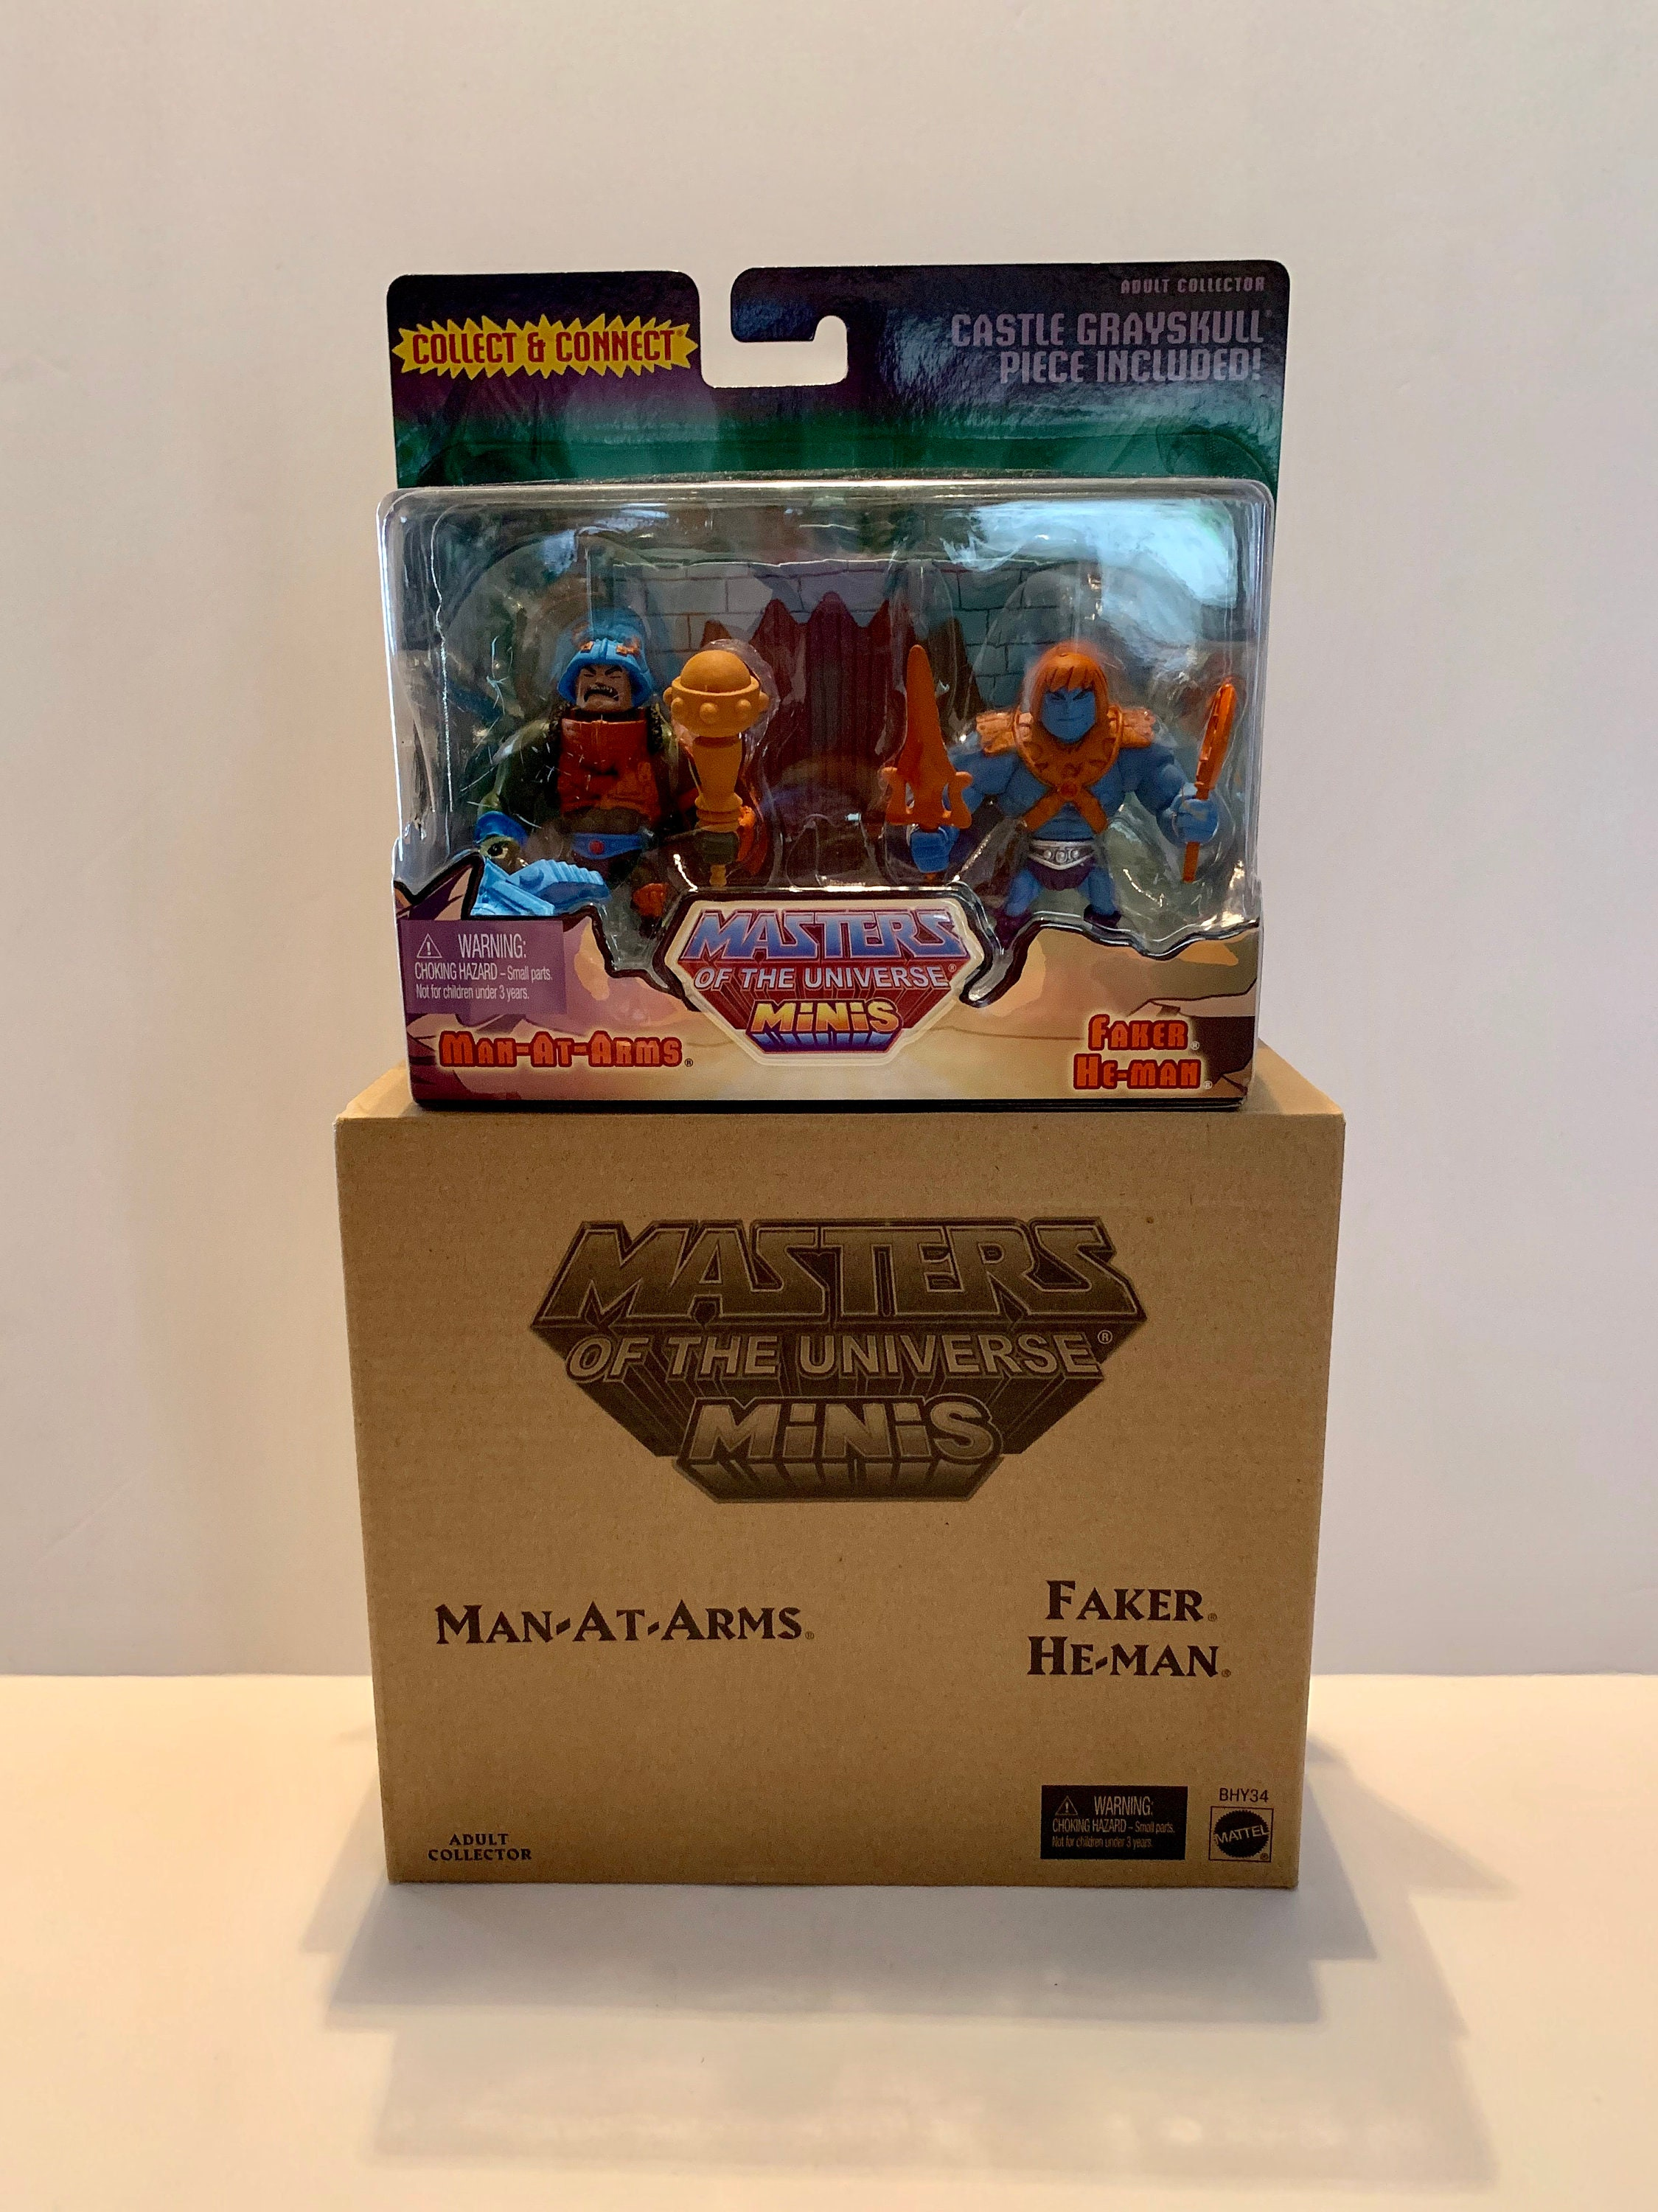 Adult Cd Universe man-at-arms & faker he-man mattel masters of the universe